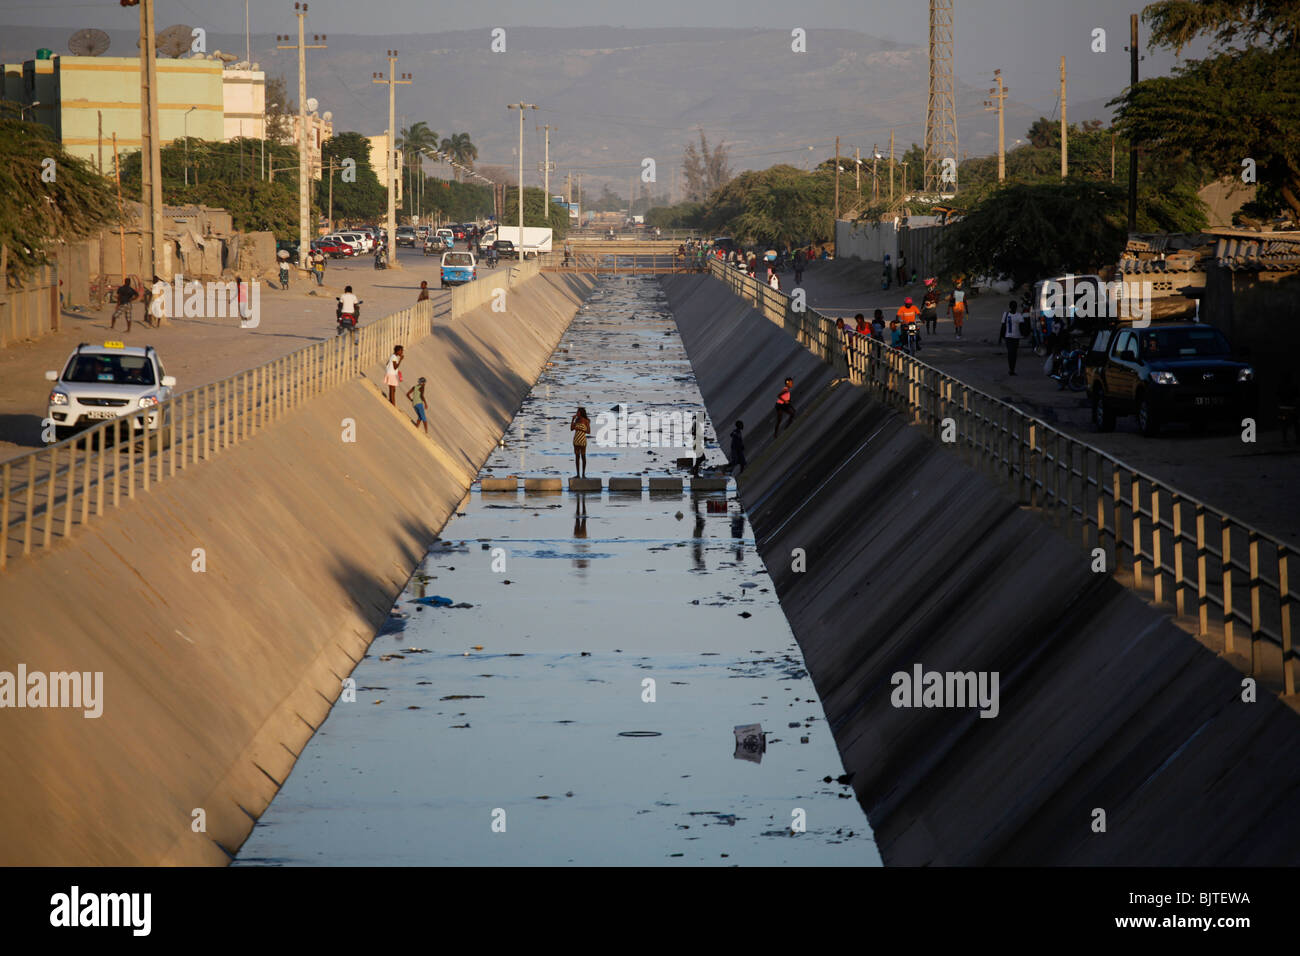 Crossing the storm drain and sewer that divides the wealthy area of Benguela from the poorer barrios.Benguela city. - Stock Image